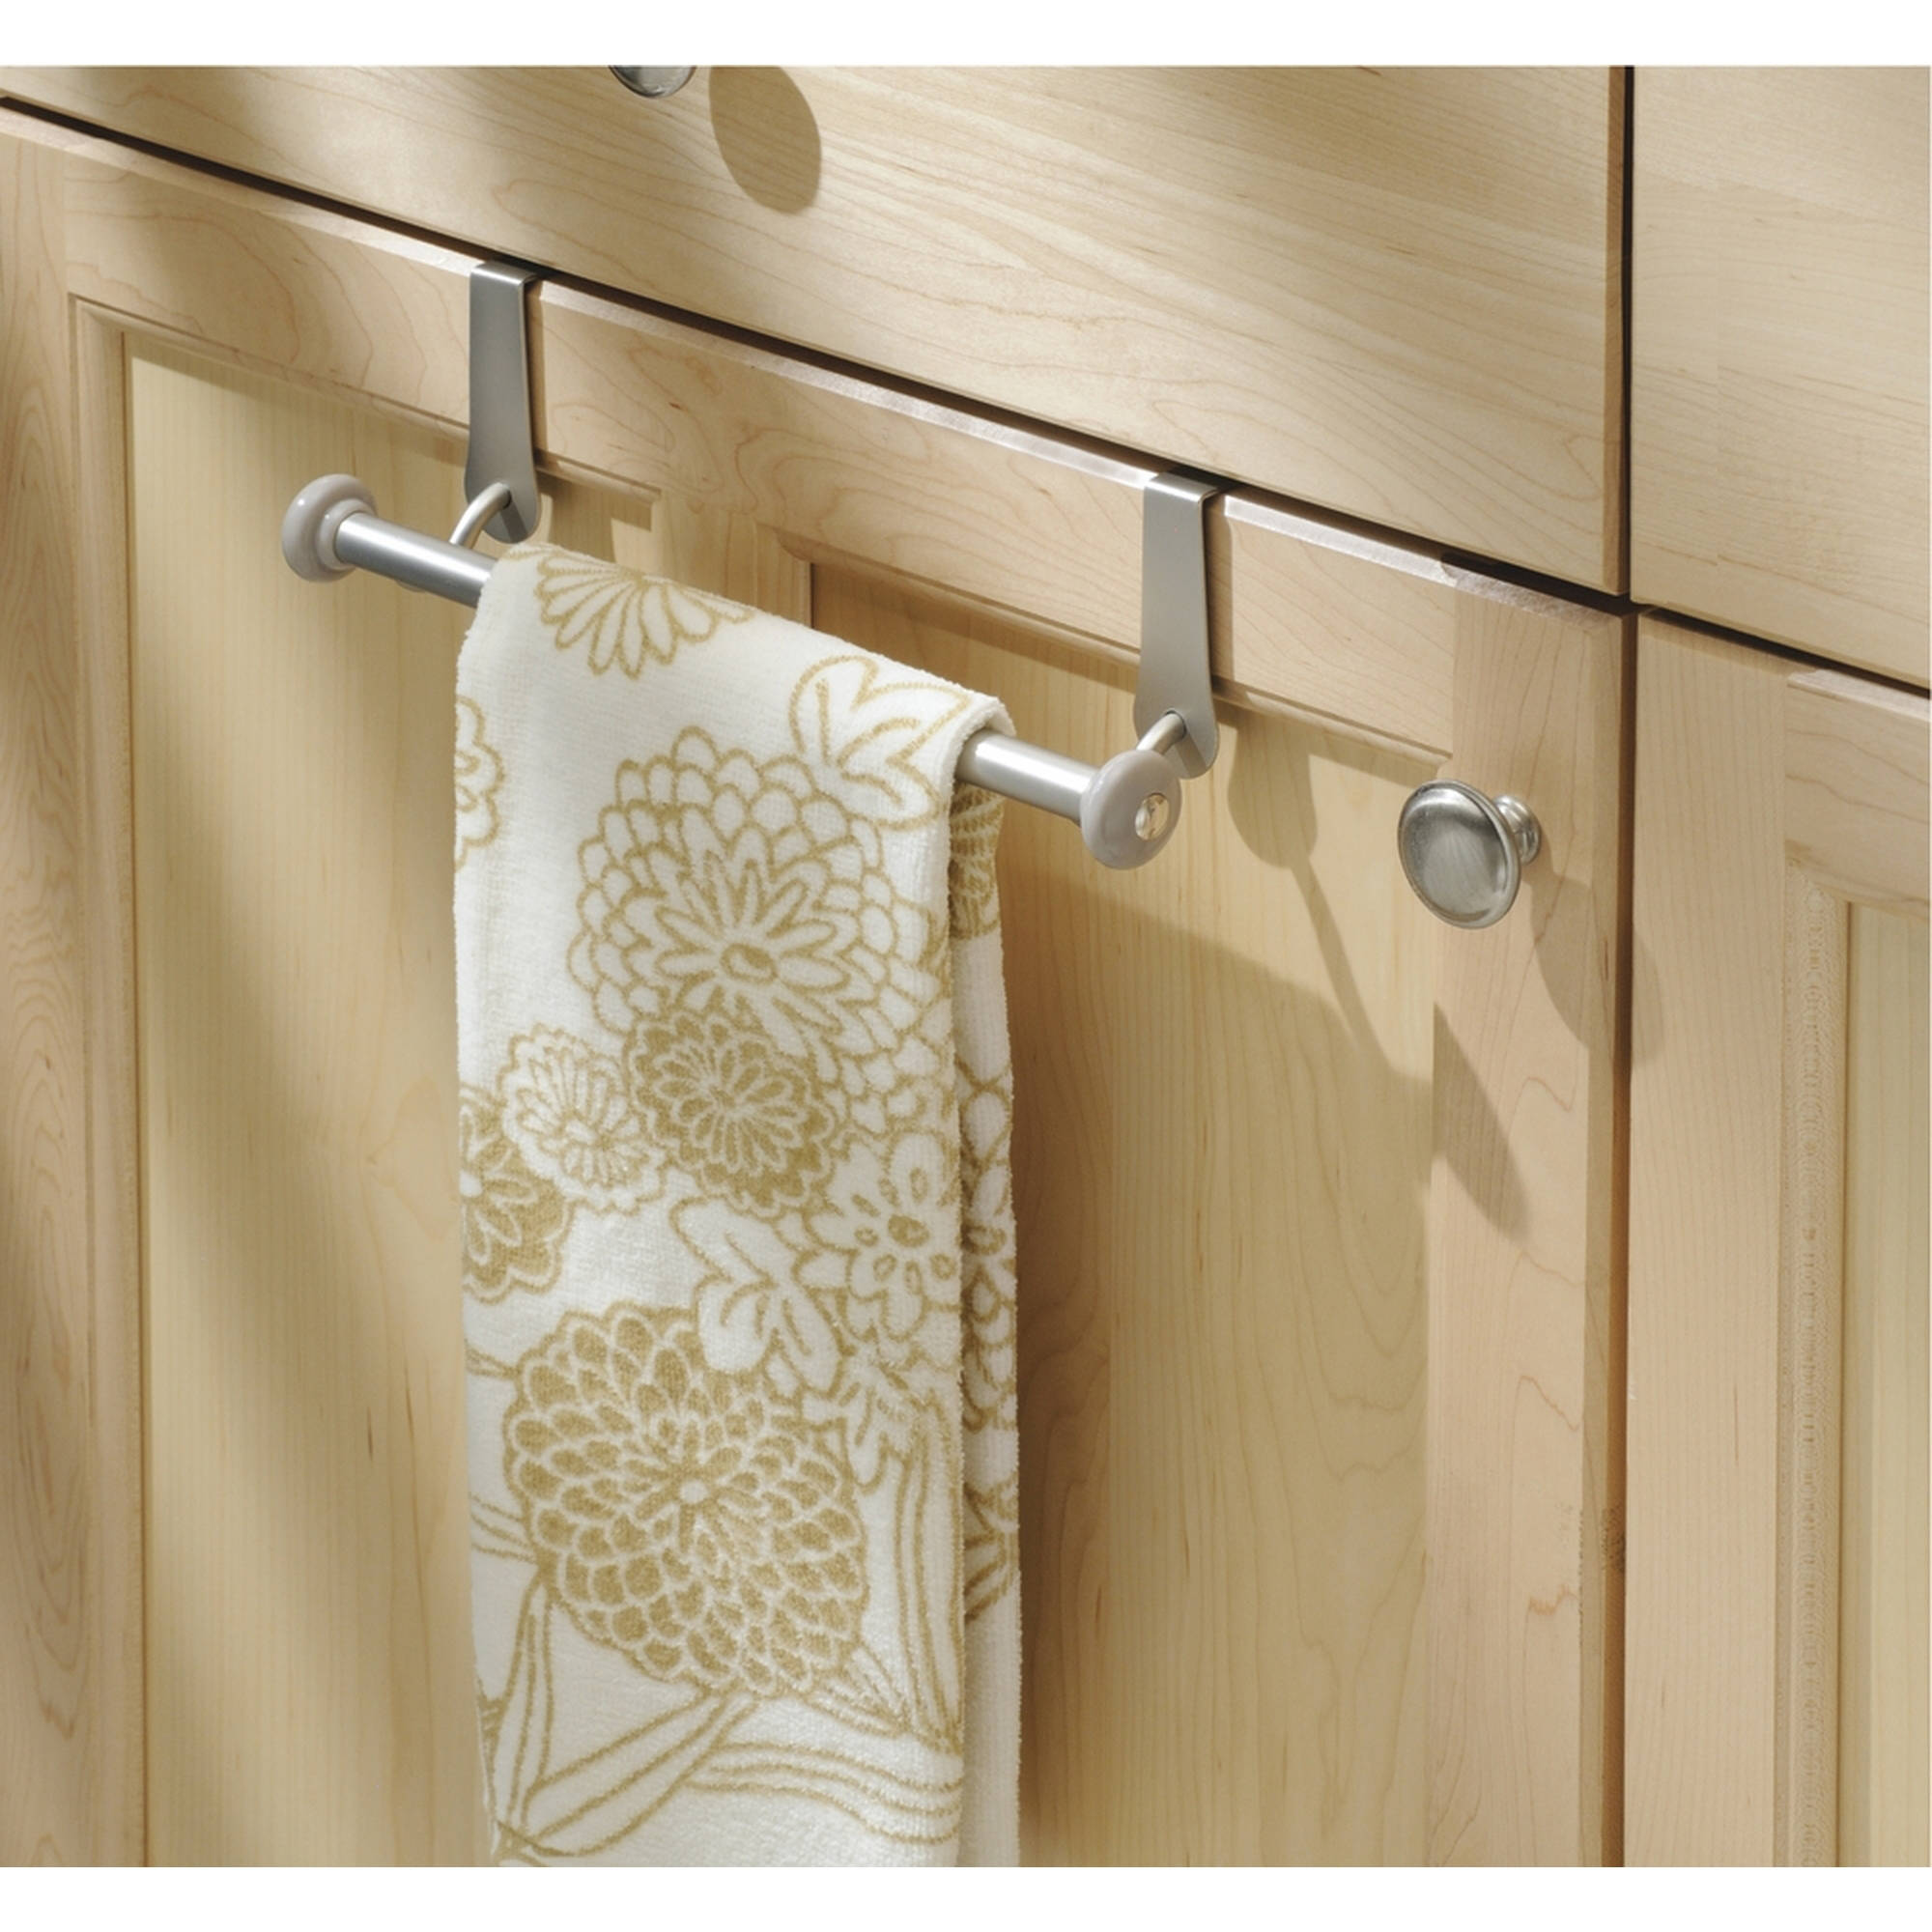 InterDesign York Over-the-Cabinet Kitchen Dish Towel Bar Holder, Satin by Generic